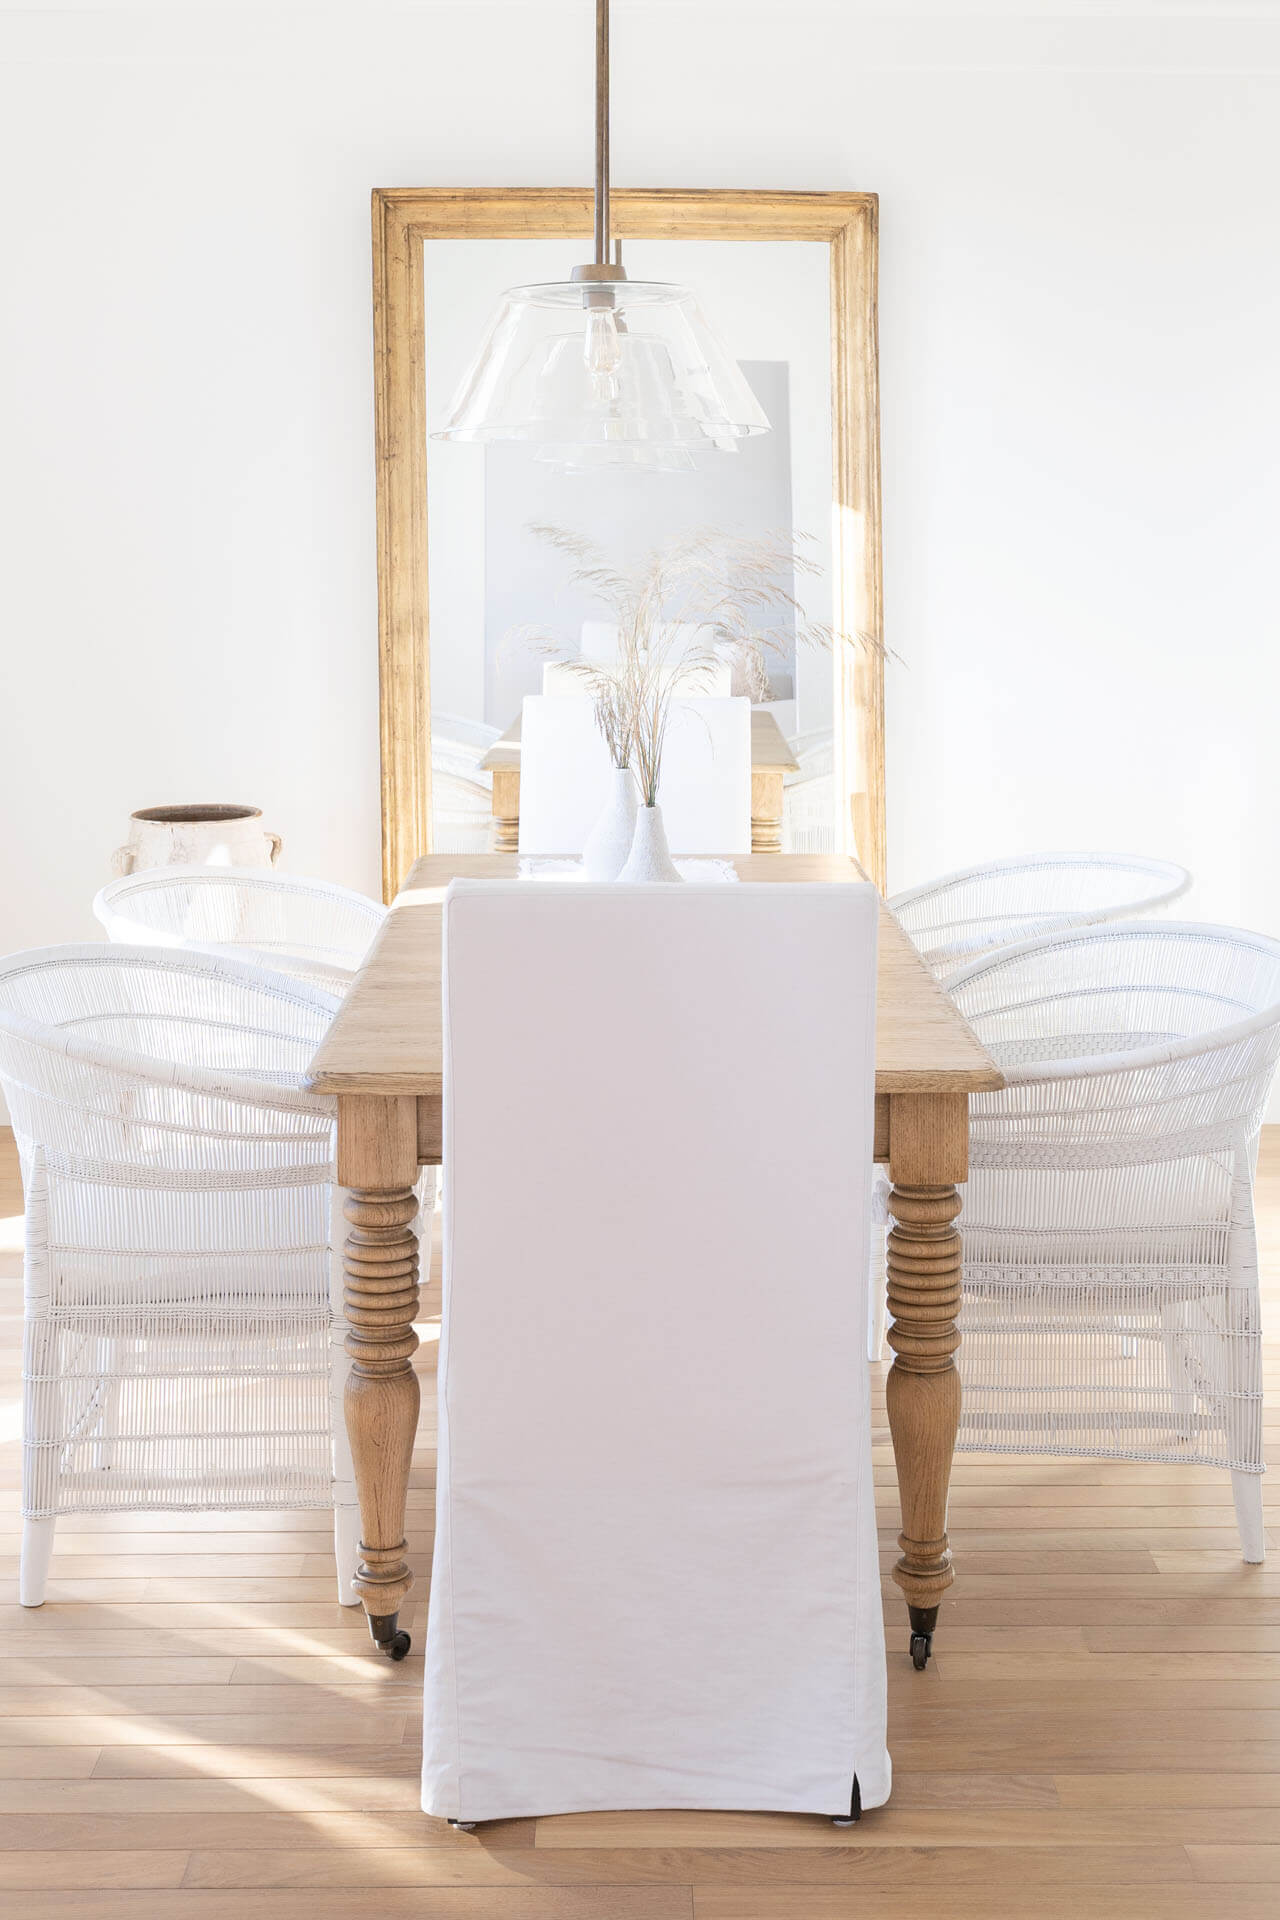 Natural wood dining table with white chairs and decor placed in front of a mirror